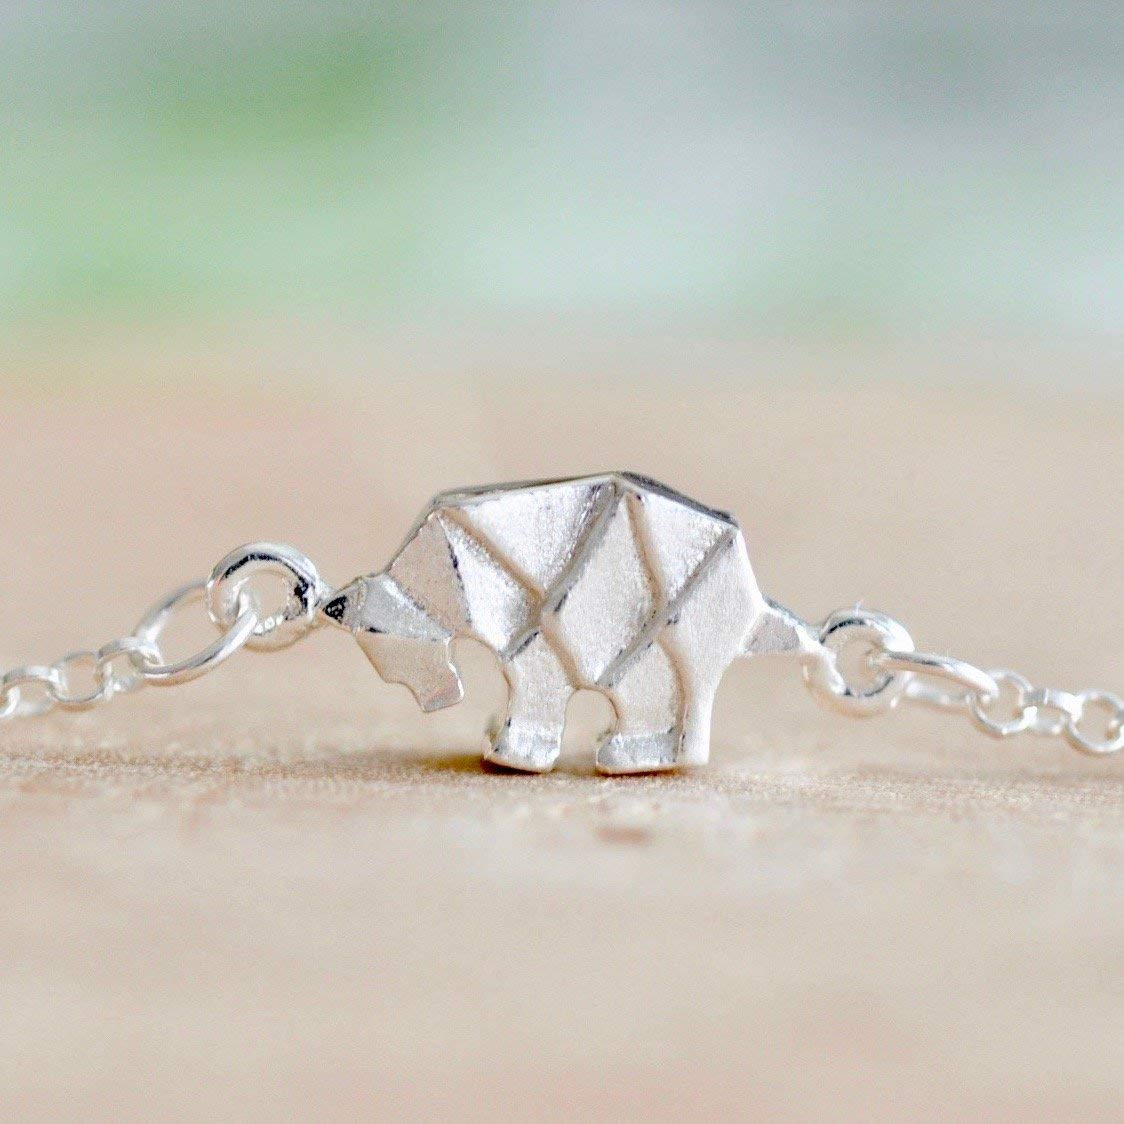 Sterling Silver 7 4.5mm Charm Bracelet With Attached Right Facing Walking Grizzly Bear Charm